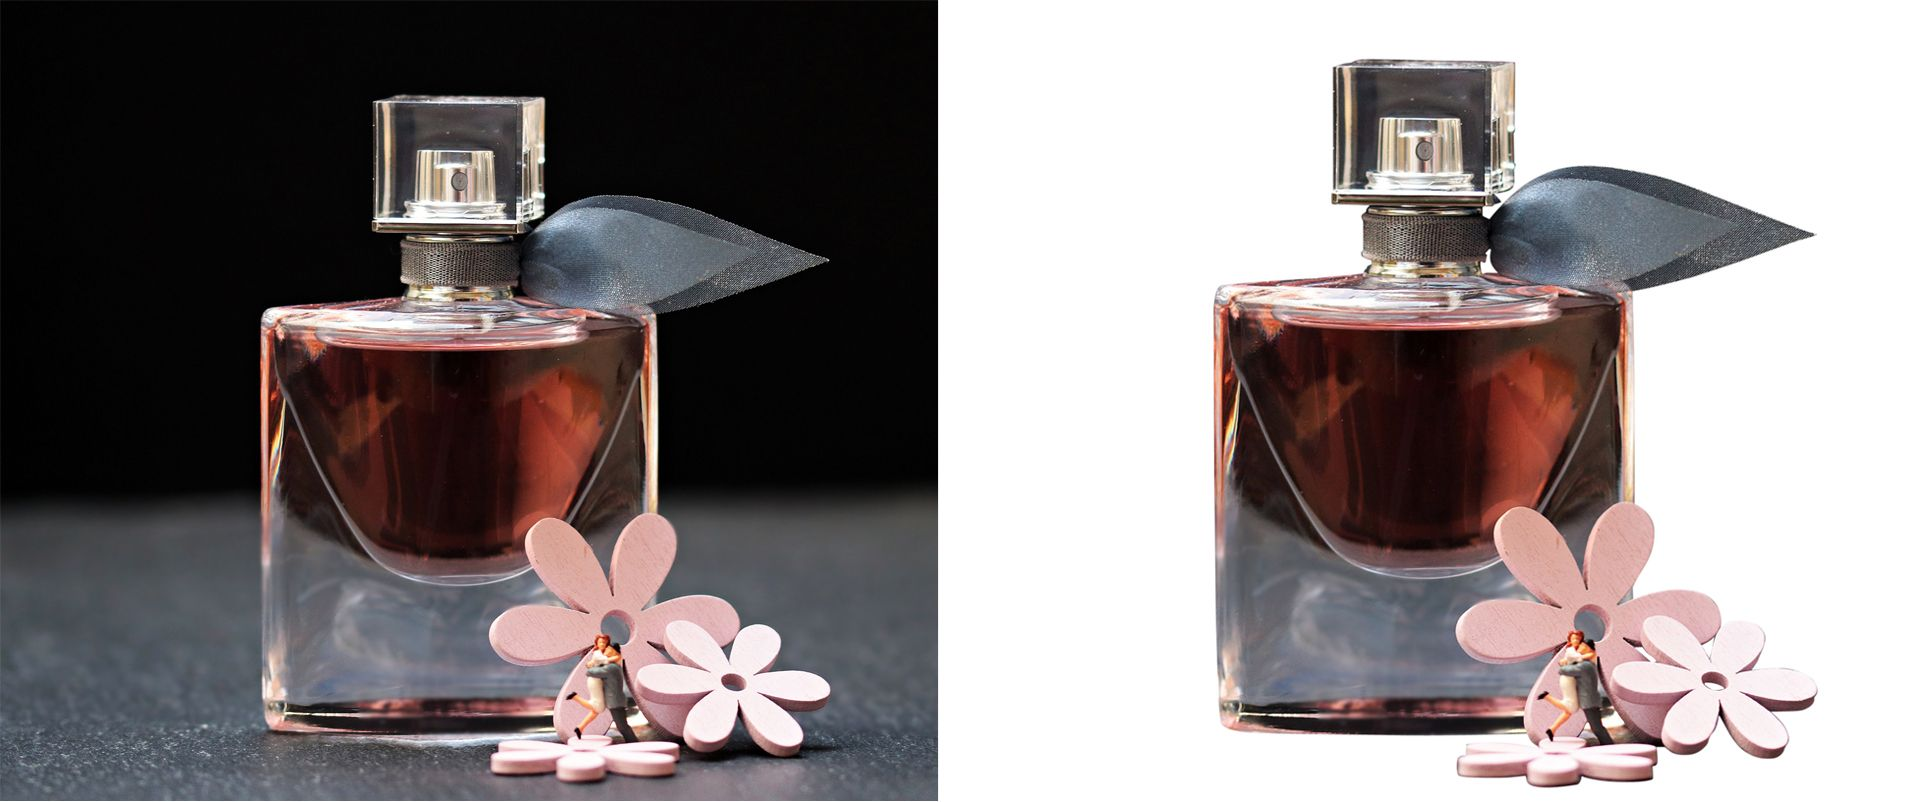 Product Photo Editing Services or Retouching Services